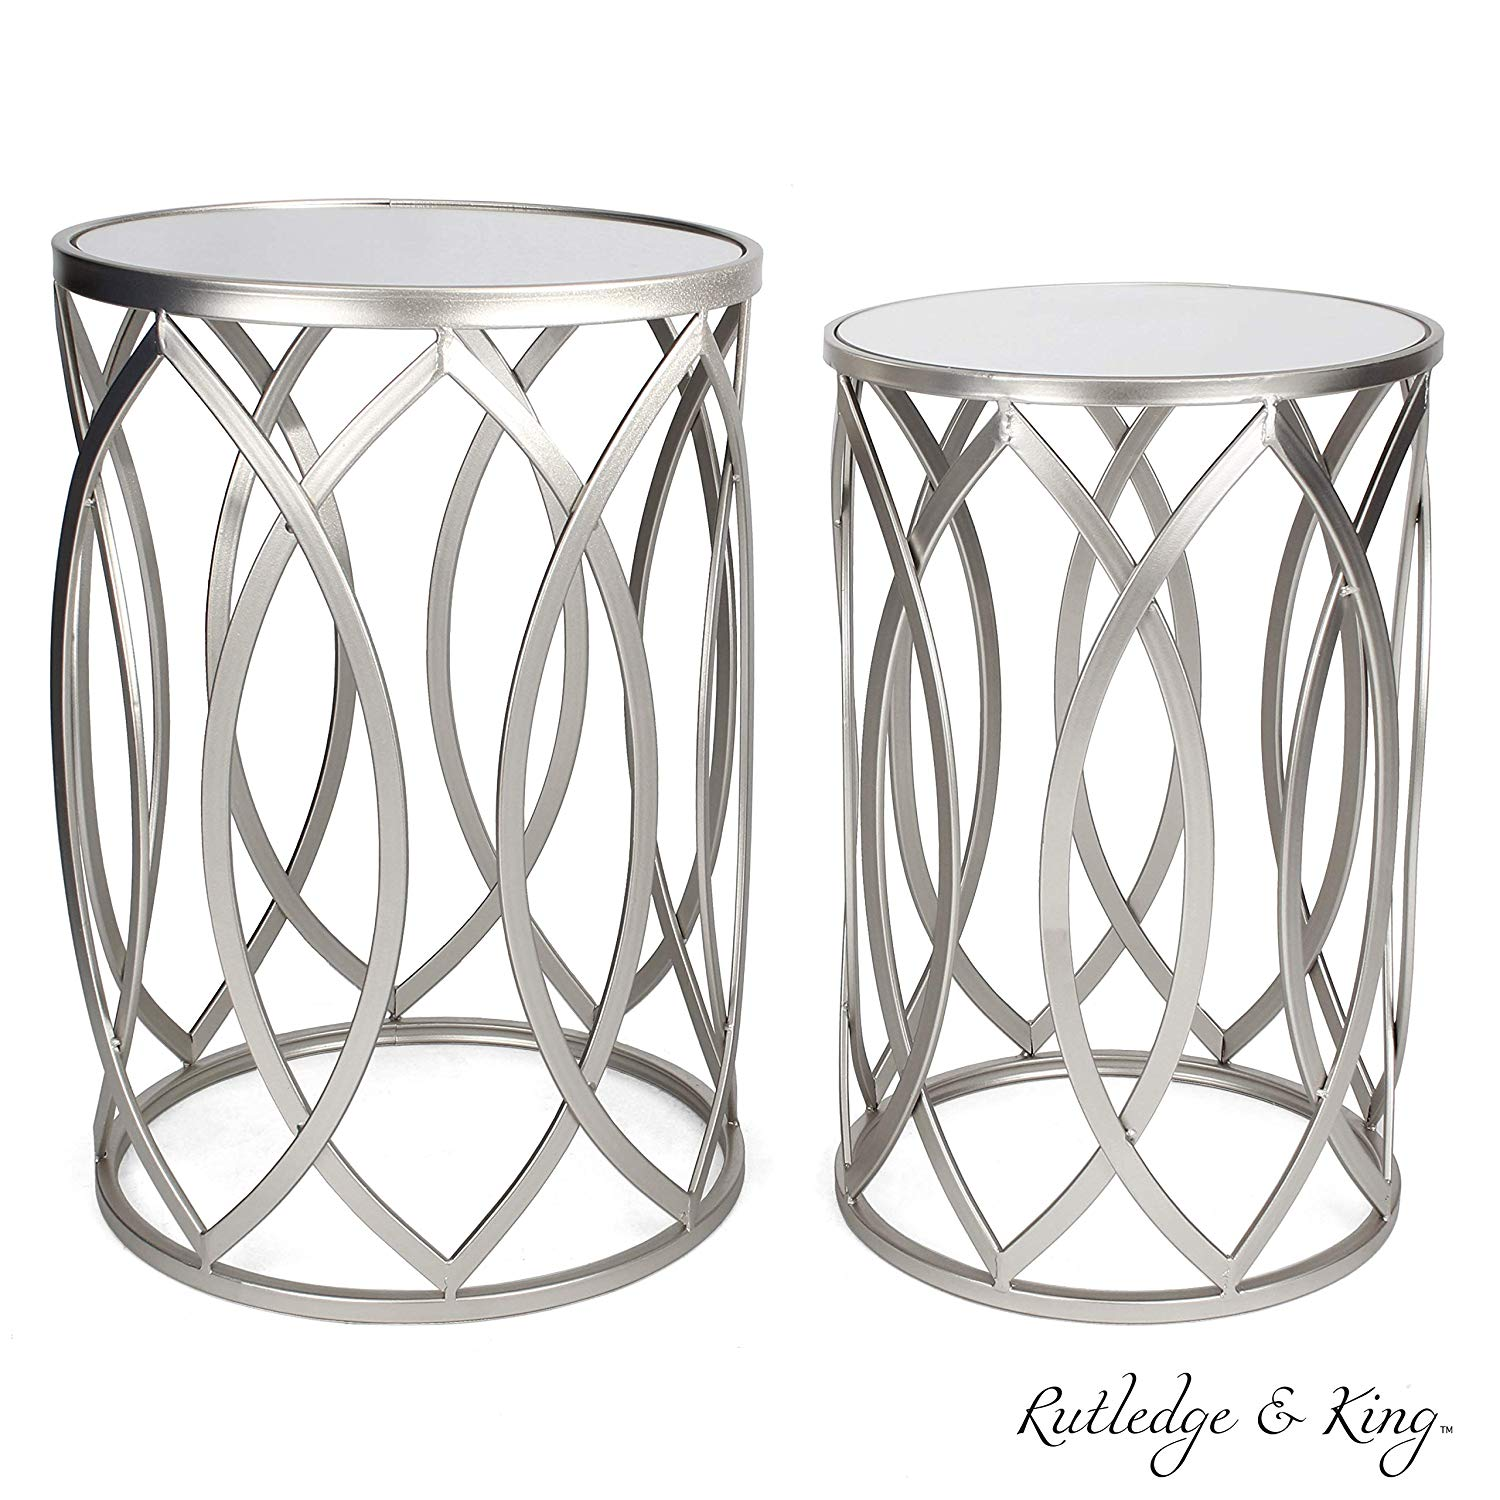 round end table set silver tables with mirrored gray accent tops nesting and metal side rutledge king blufton wrought iron rectangle drawer pier one imports patio furniture red